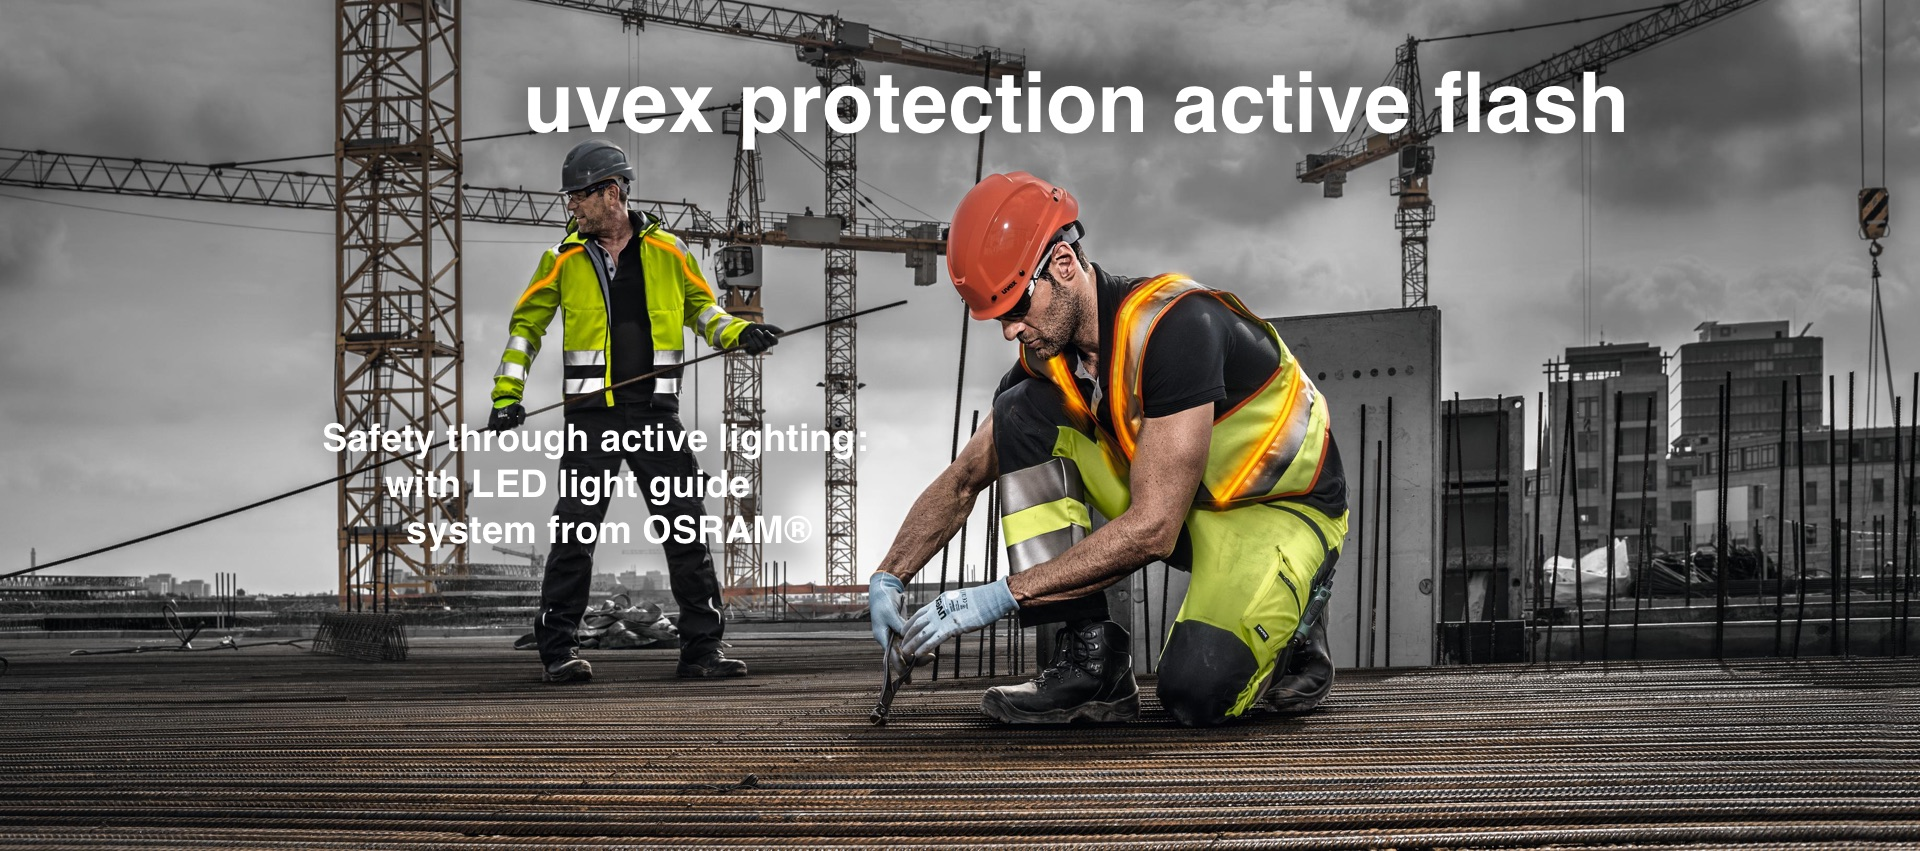 Be visible, be safe – with an active LED lighting vest from uvex